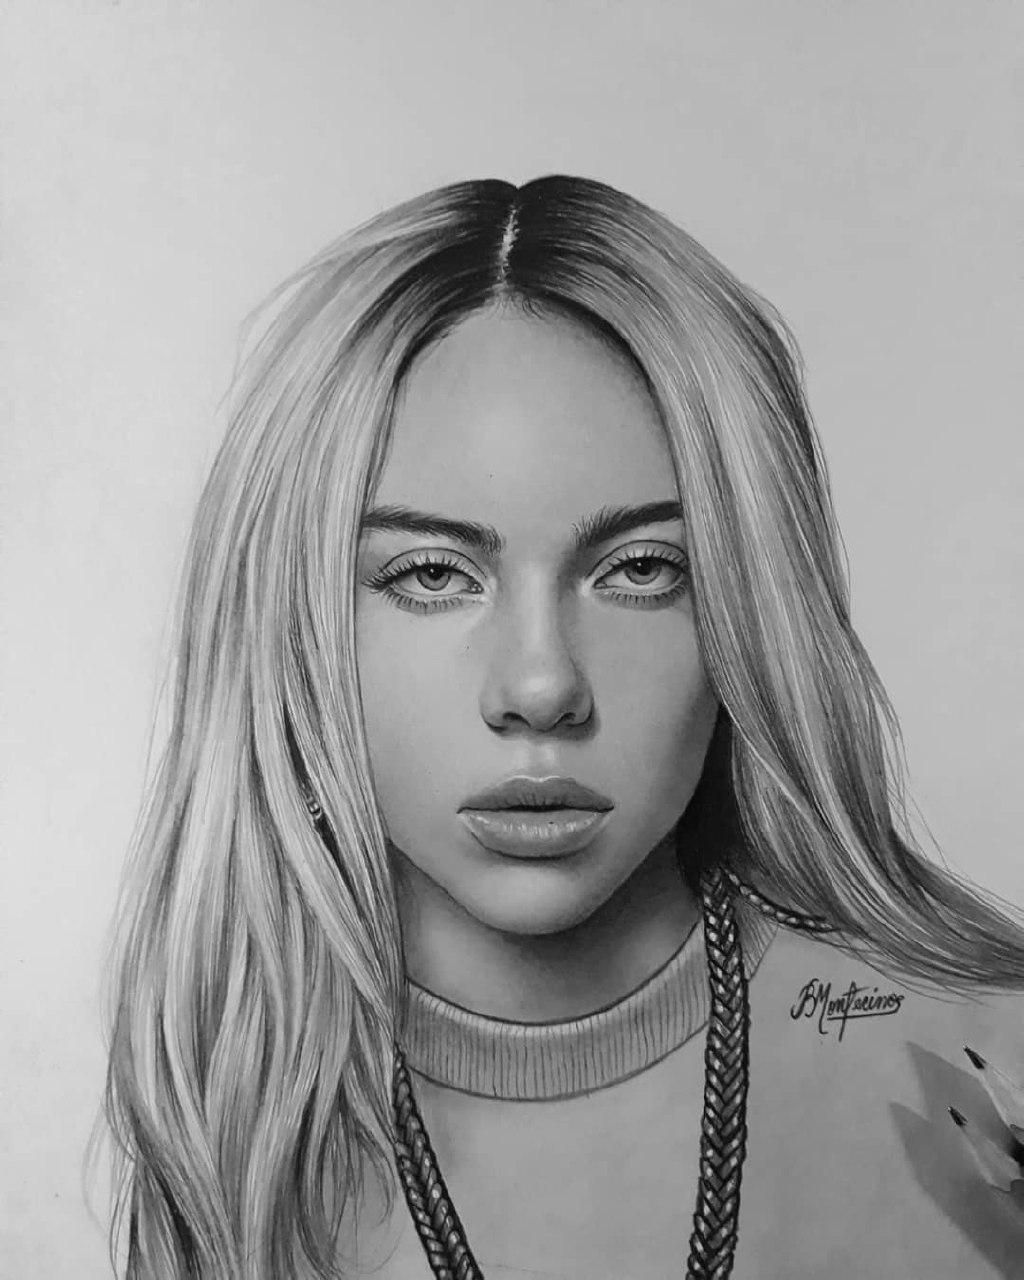 Top Drawing Inspirations In 2020 With Images Celebrity